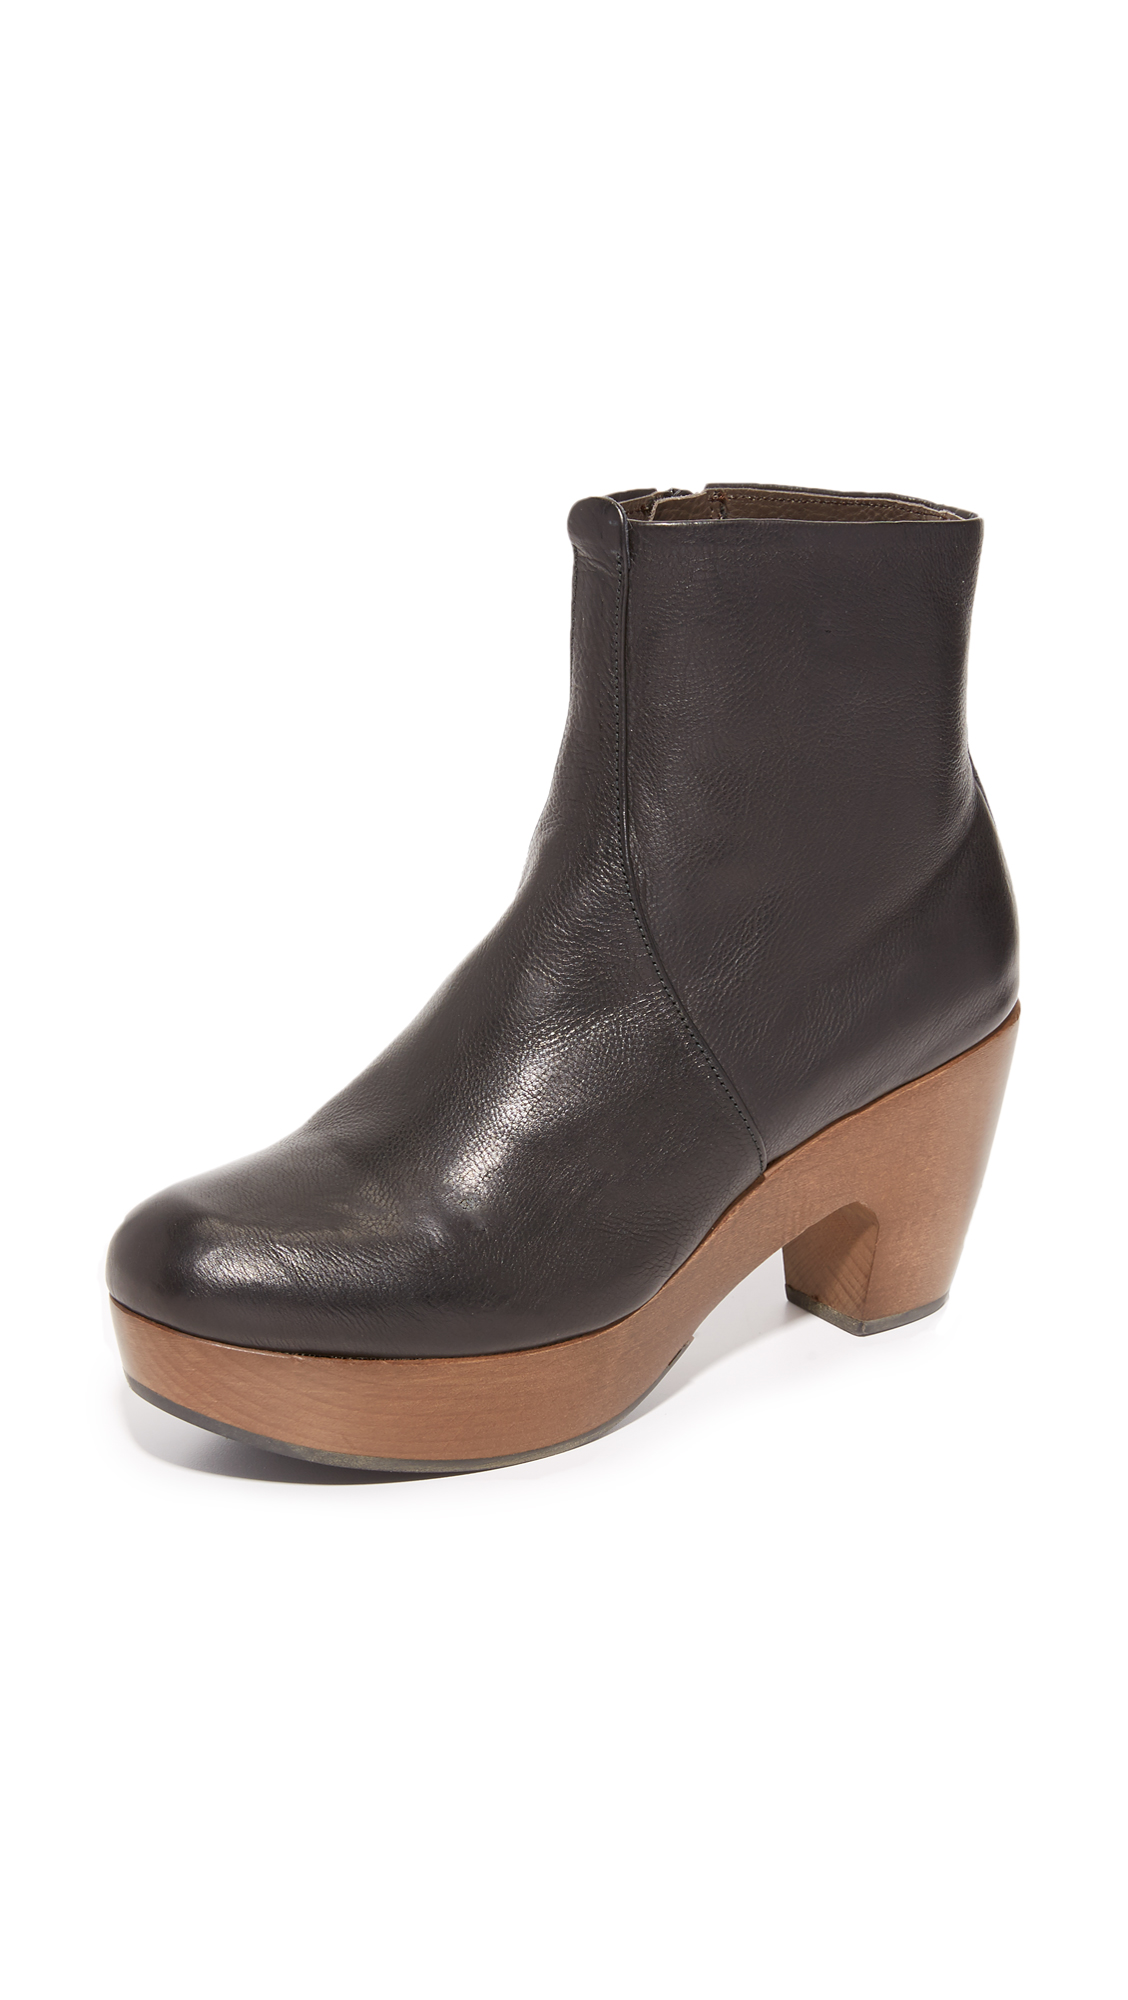 Coclico Shoes Tecla Clog Booties - Black at Shopbop